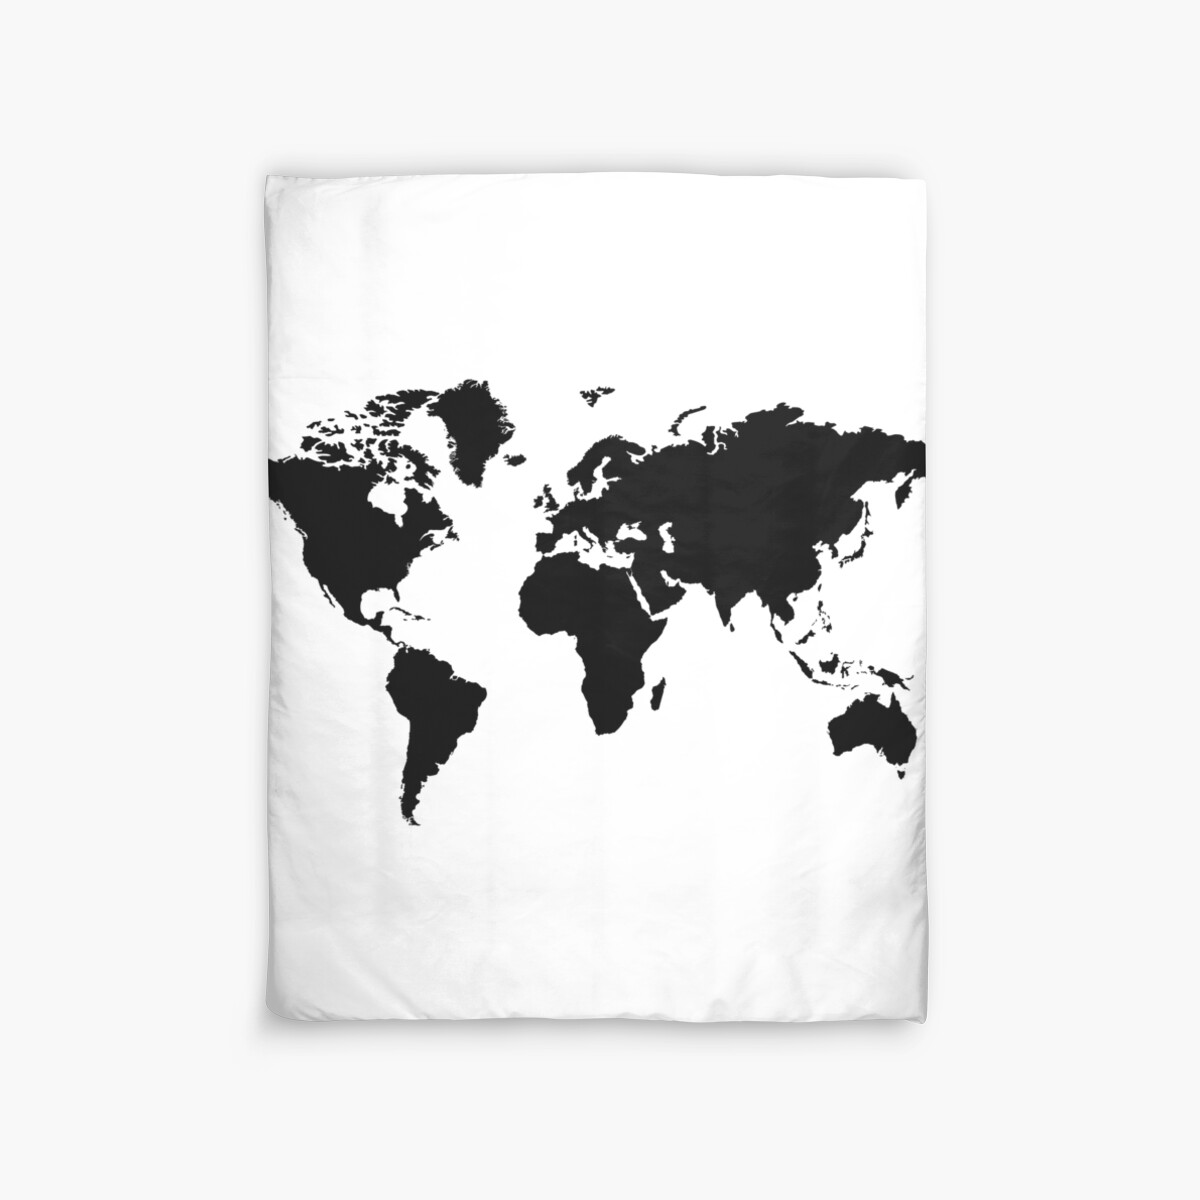 Black and white world map duvet covers by haroulita redbubble black and white world map by haroulita publicscrutiny Images